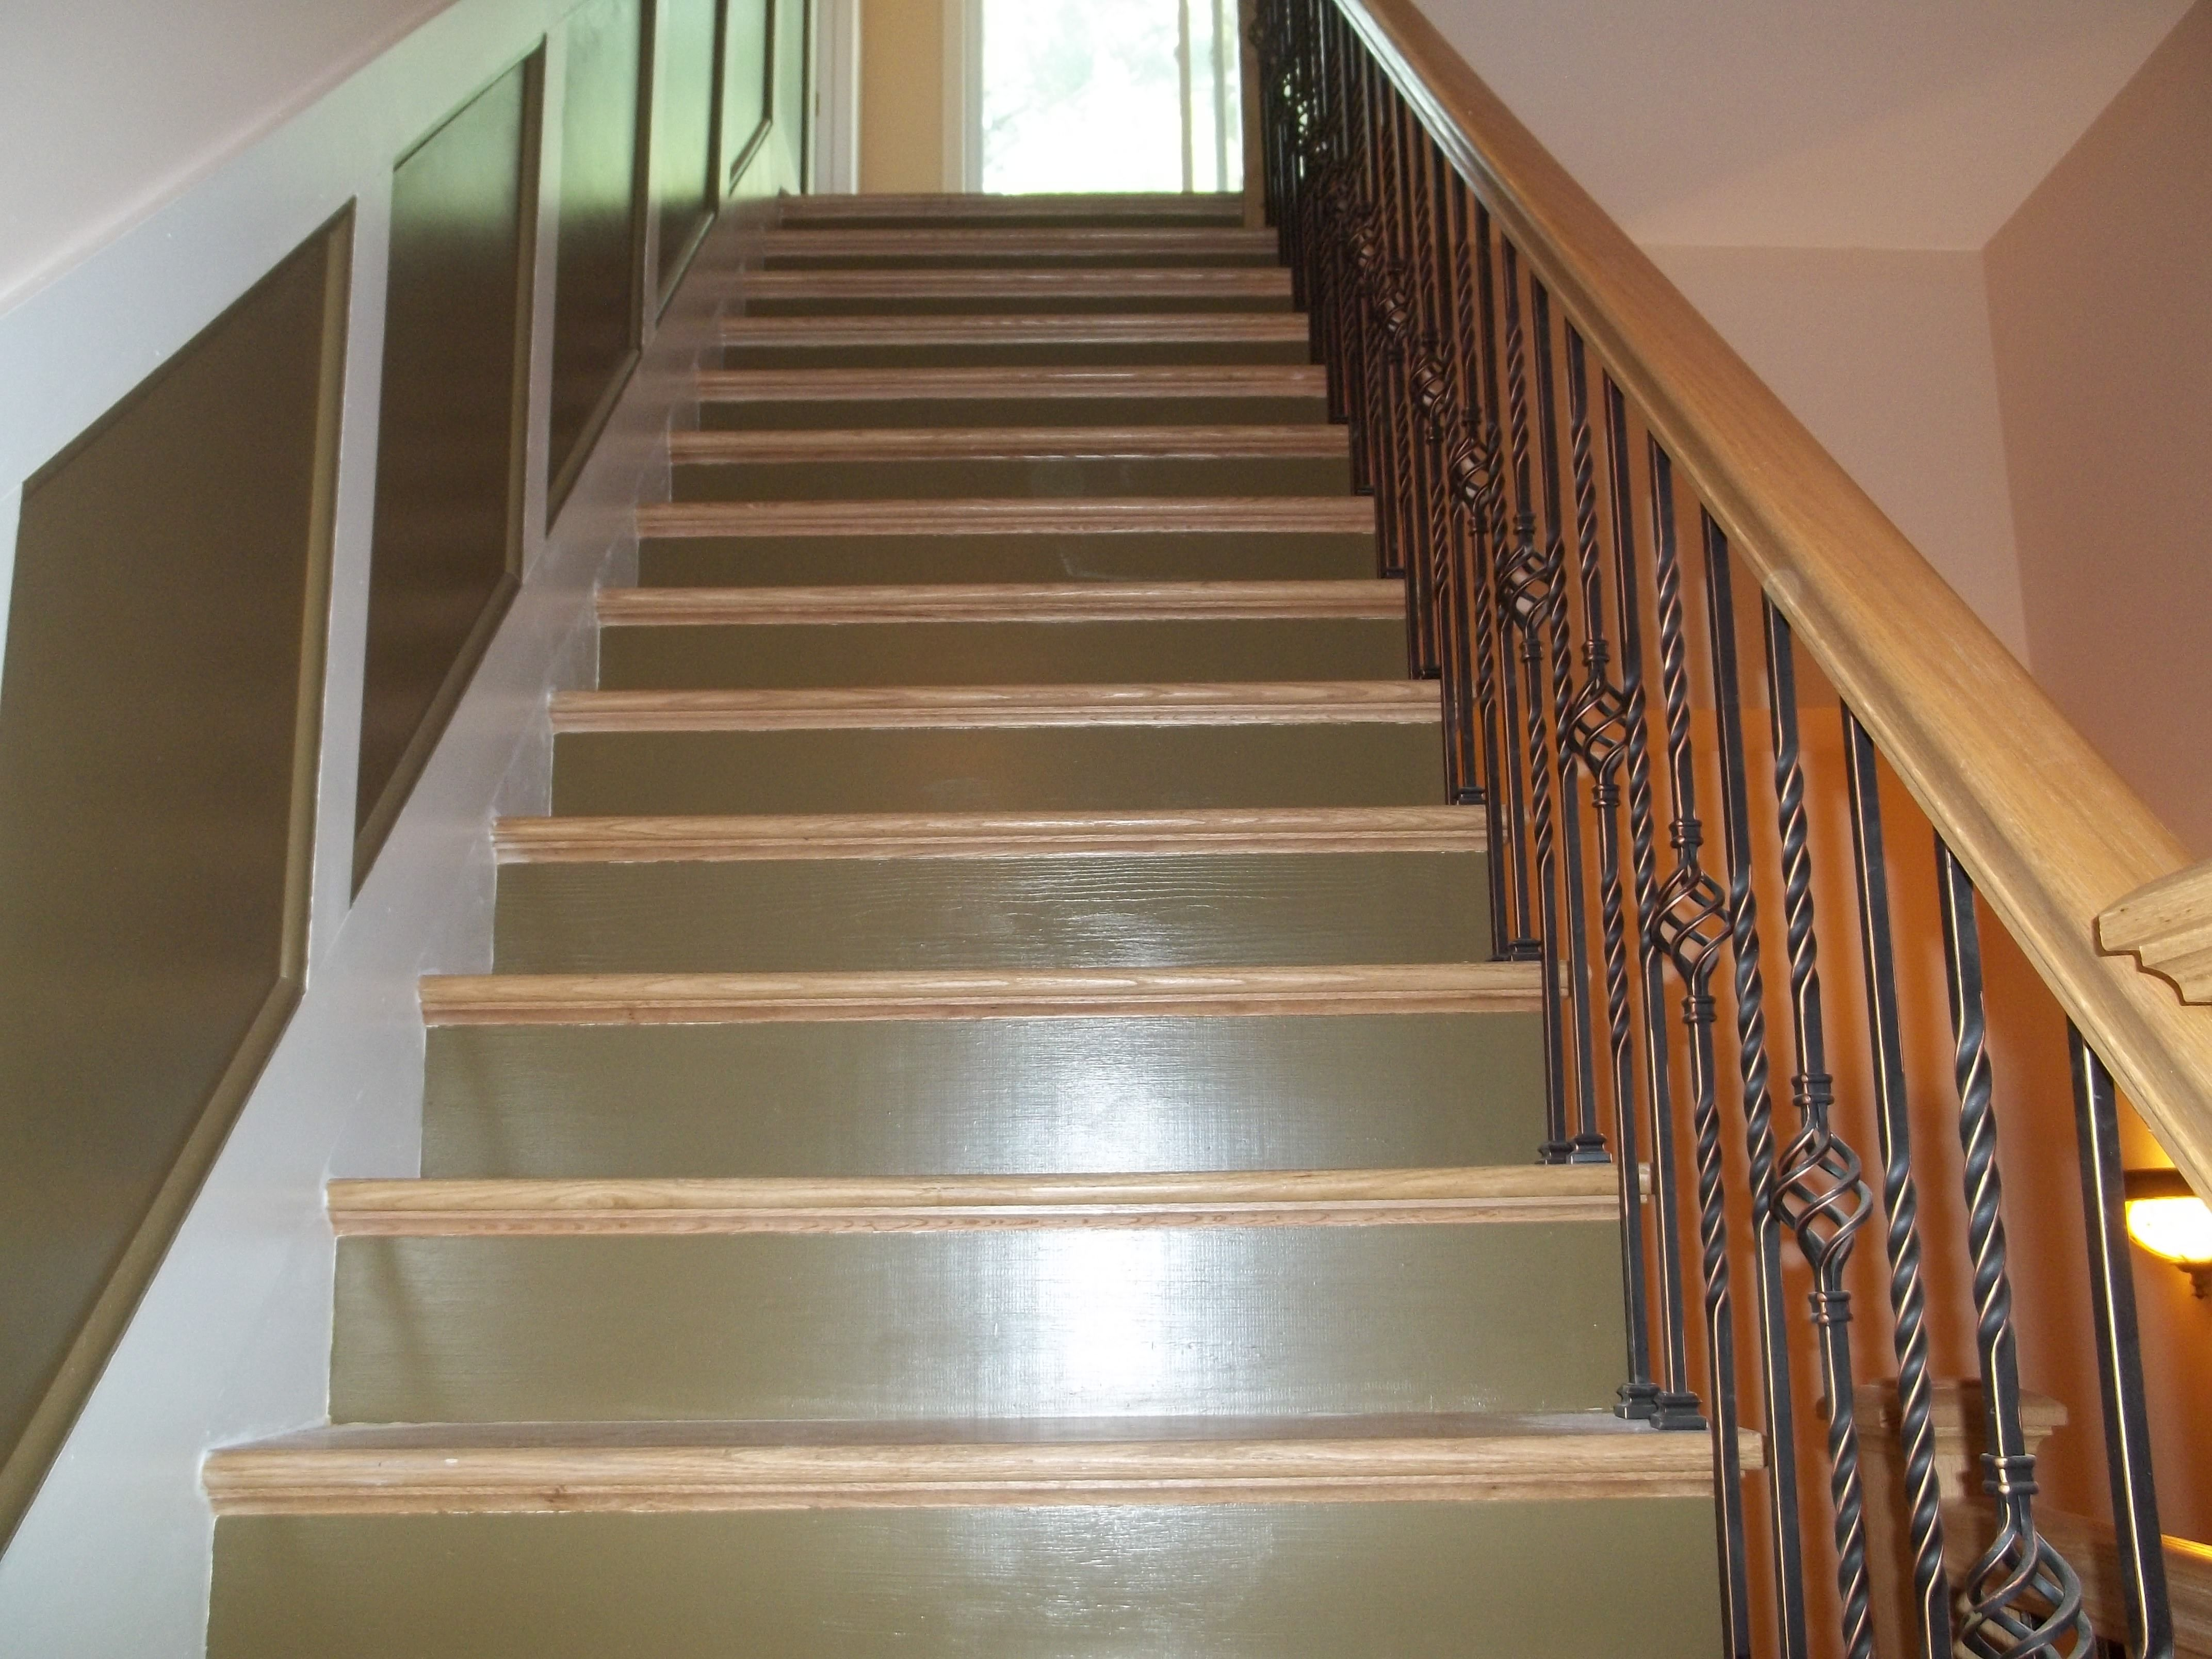 Interior Custom Stair Painting Of The Risers, Stringers And Wall Trim In  Catskill, NY.